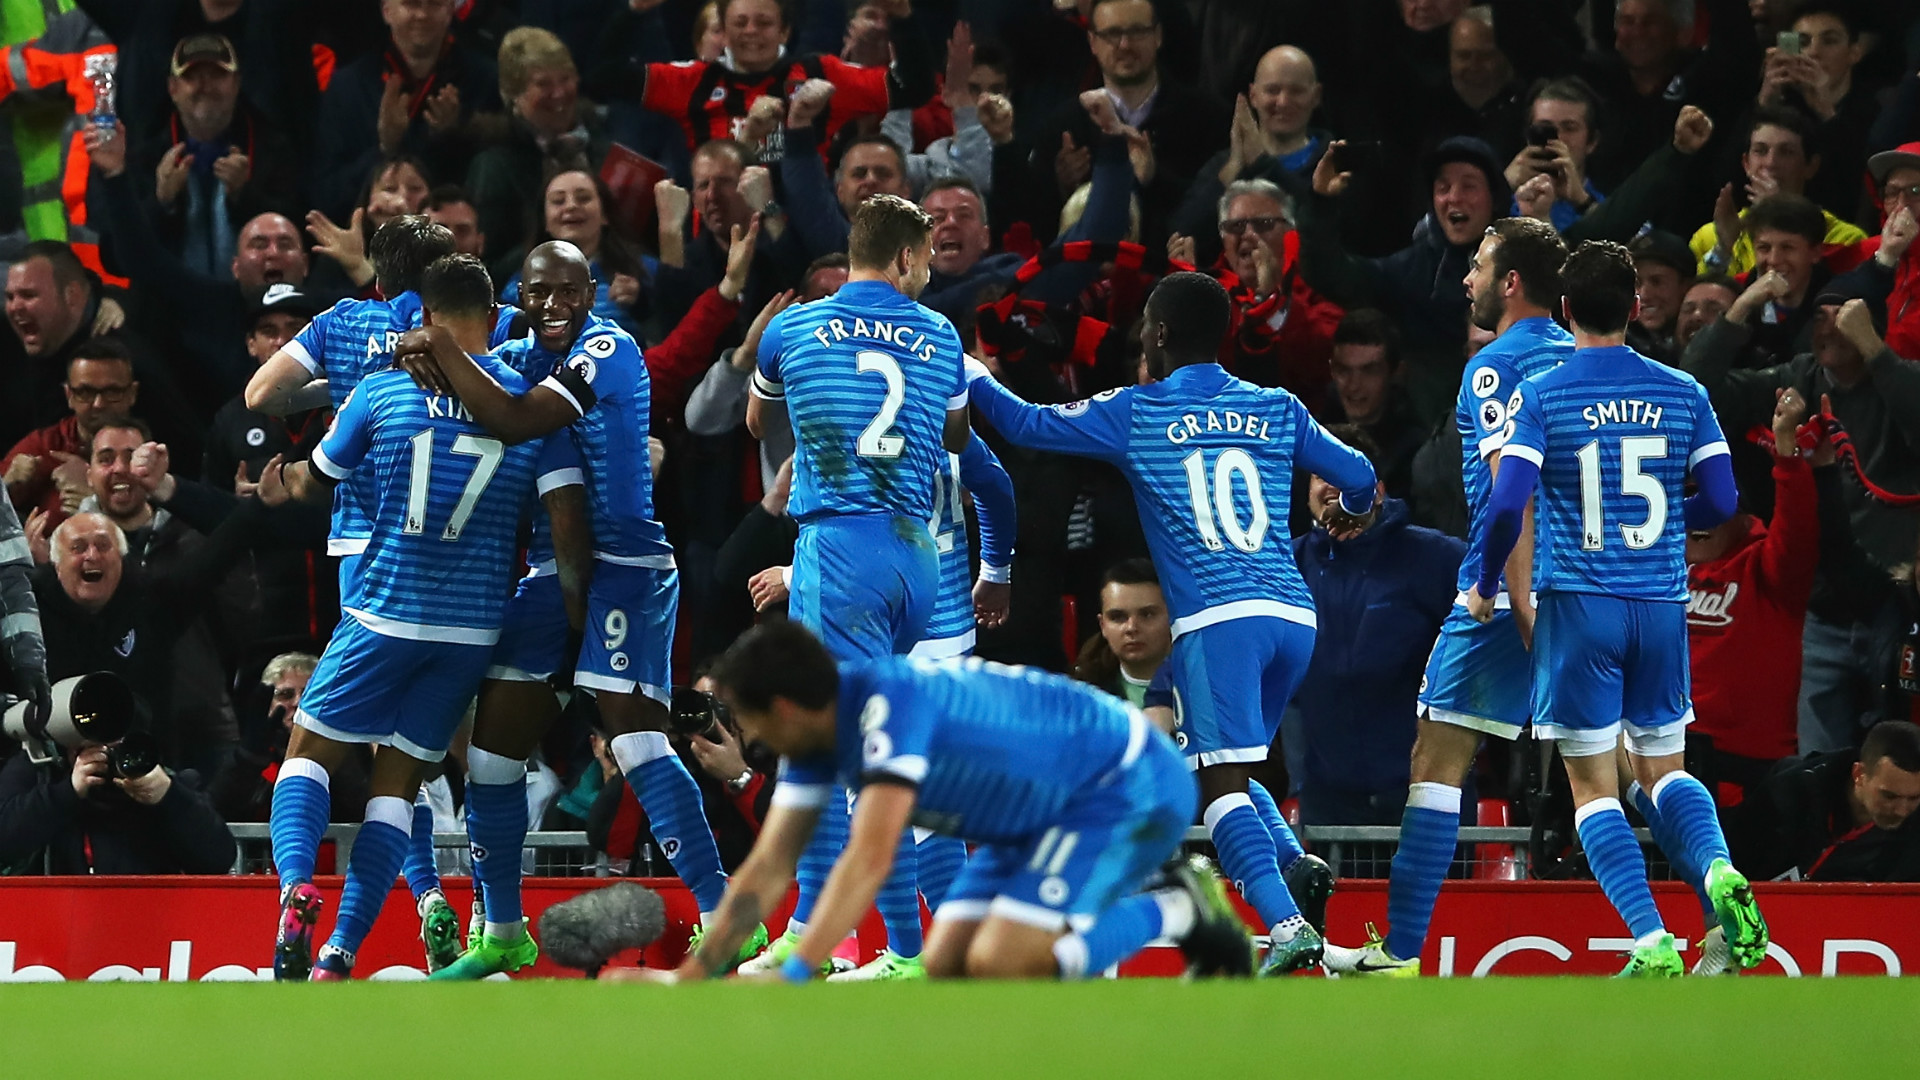 Bournemouth celebrate